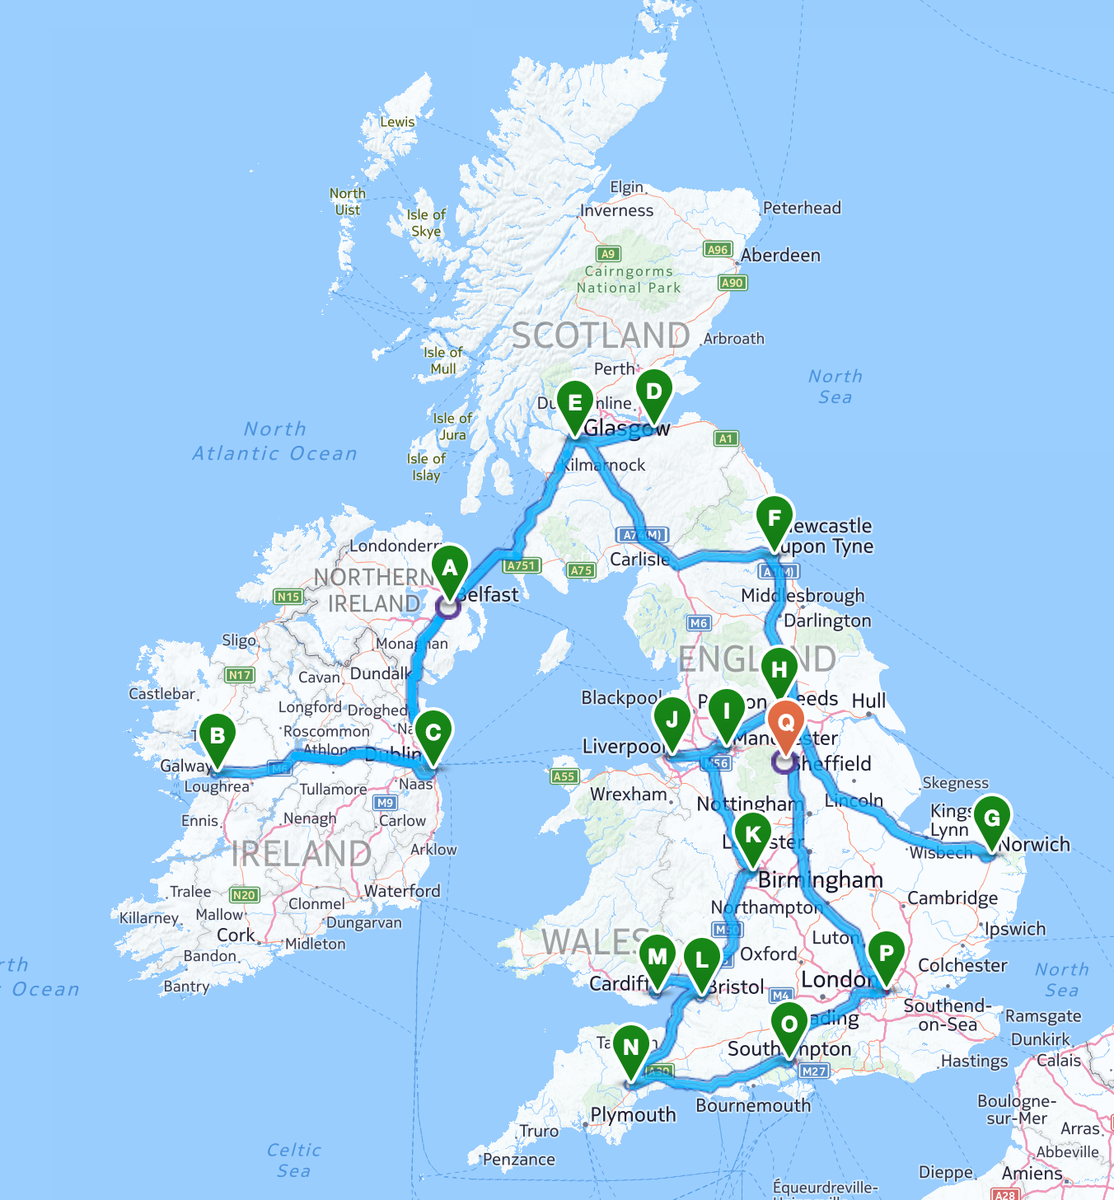 This is what the month of May 2015 looks like for me & Lucy Spraggan! #Unsinkable #UnsinkableTour #UK #Ireland http://t.co/guP1l1bvnN